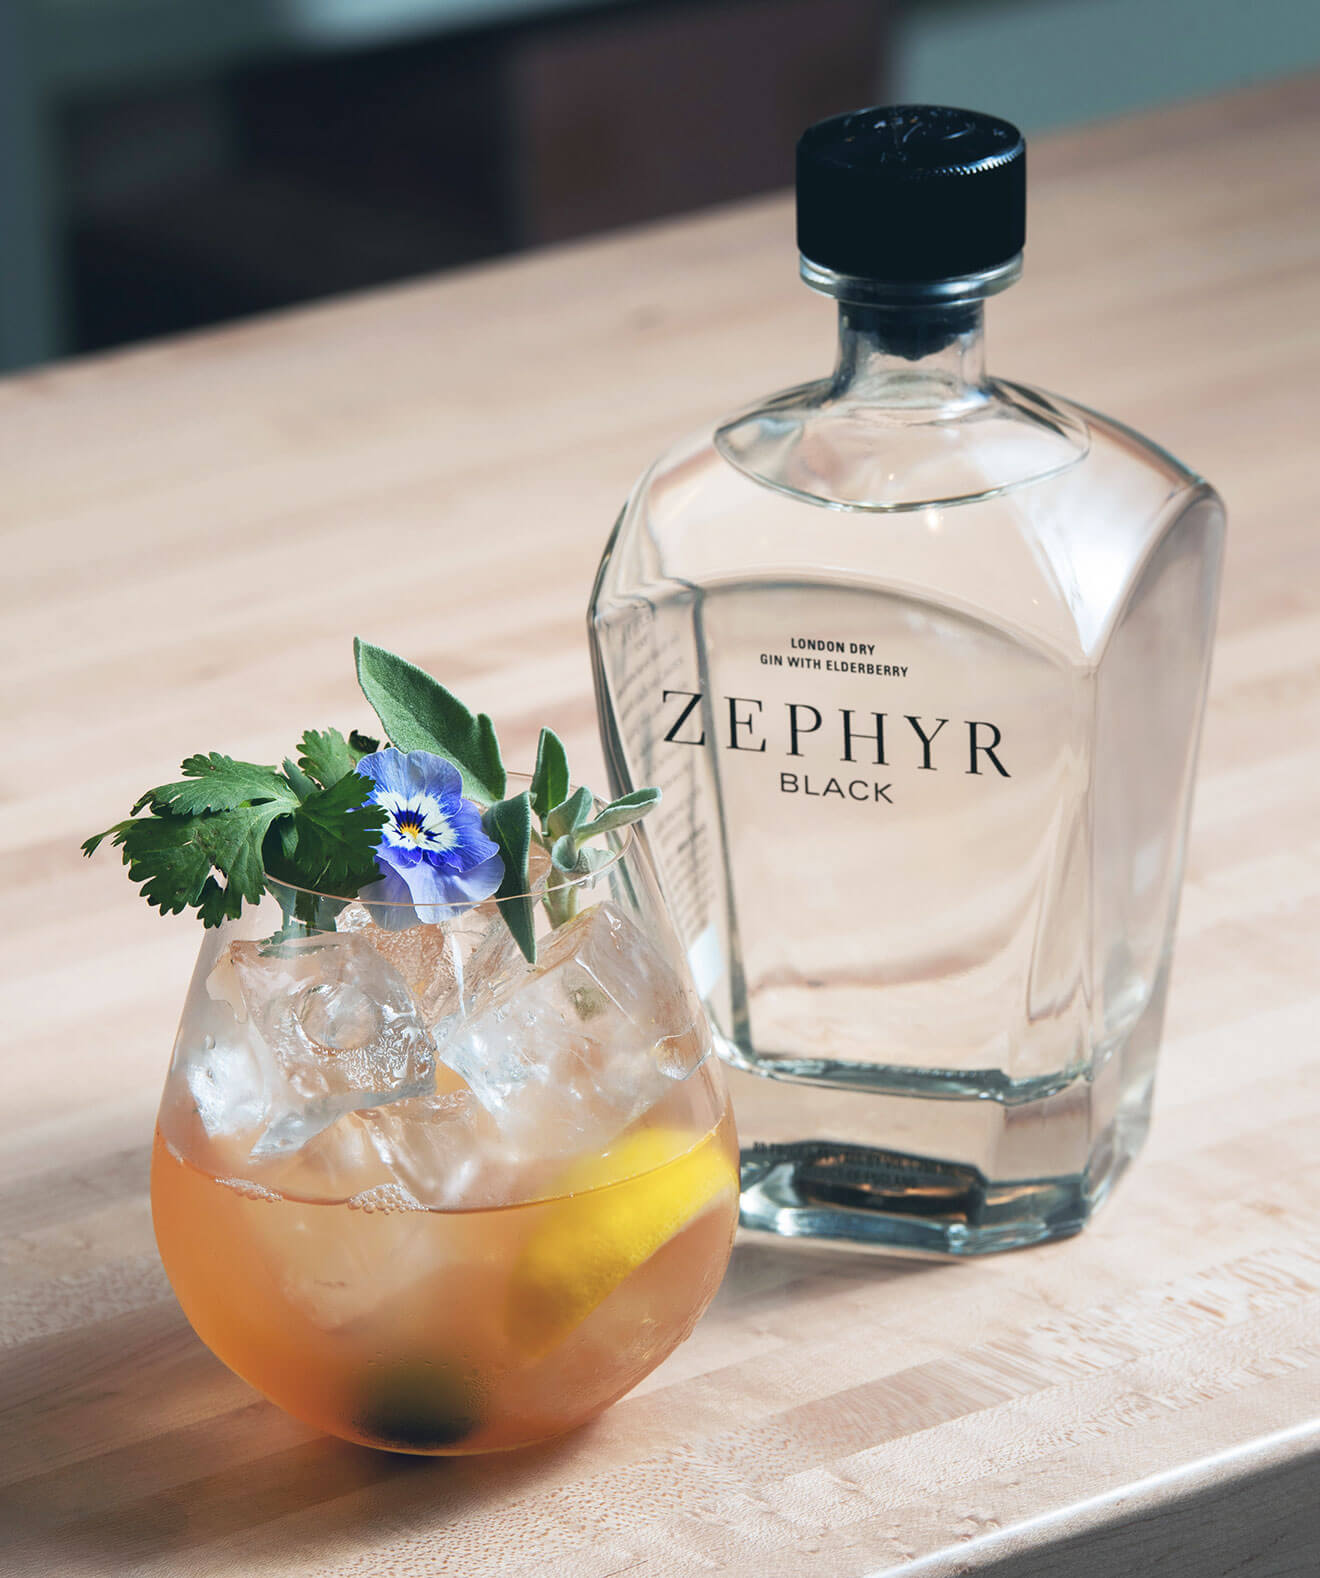 Zephyr Black Gin & Tonic, cocktail and bottle, wood table, angle overhead view